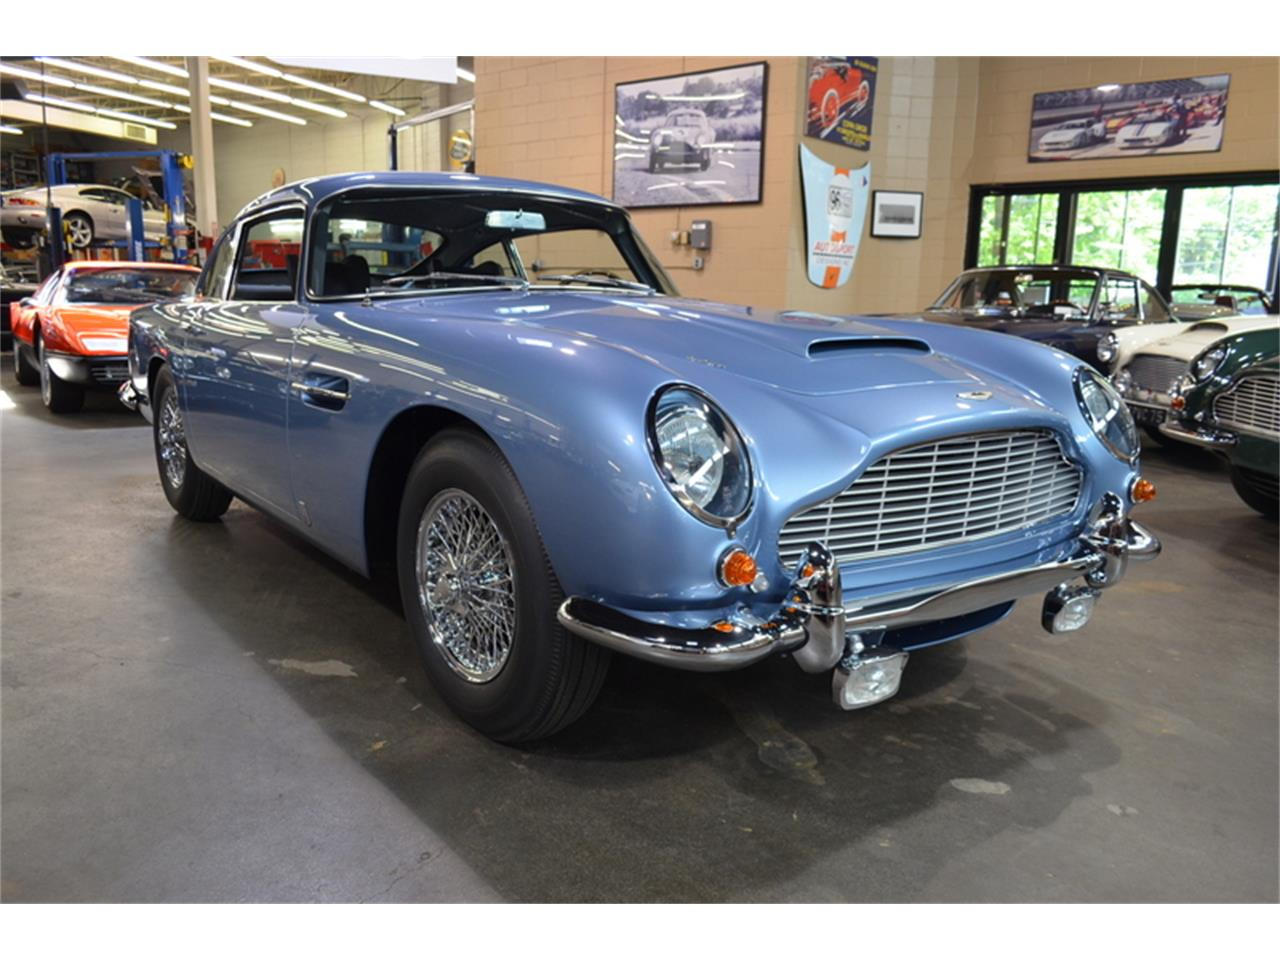 1965 aston martin db5 for sale | classiccars | cc-1099101